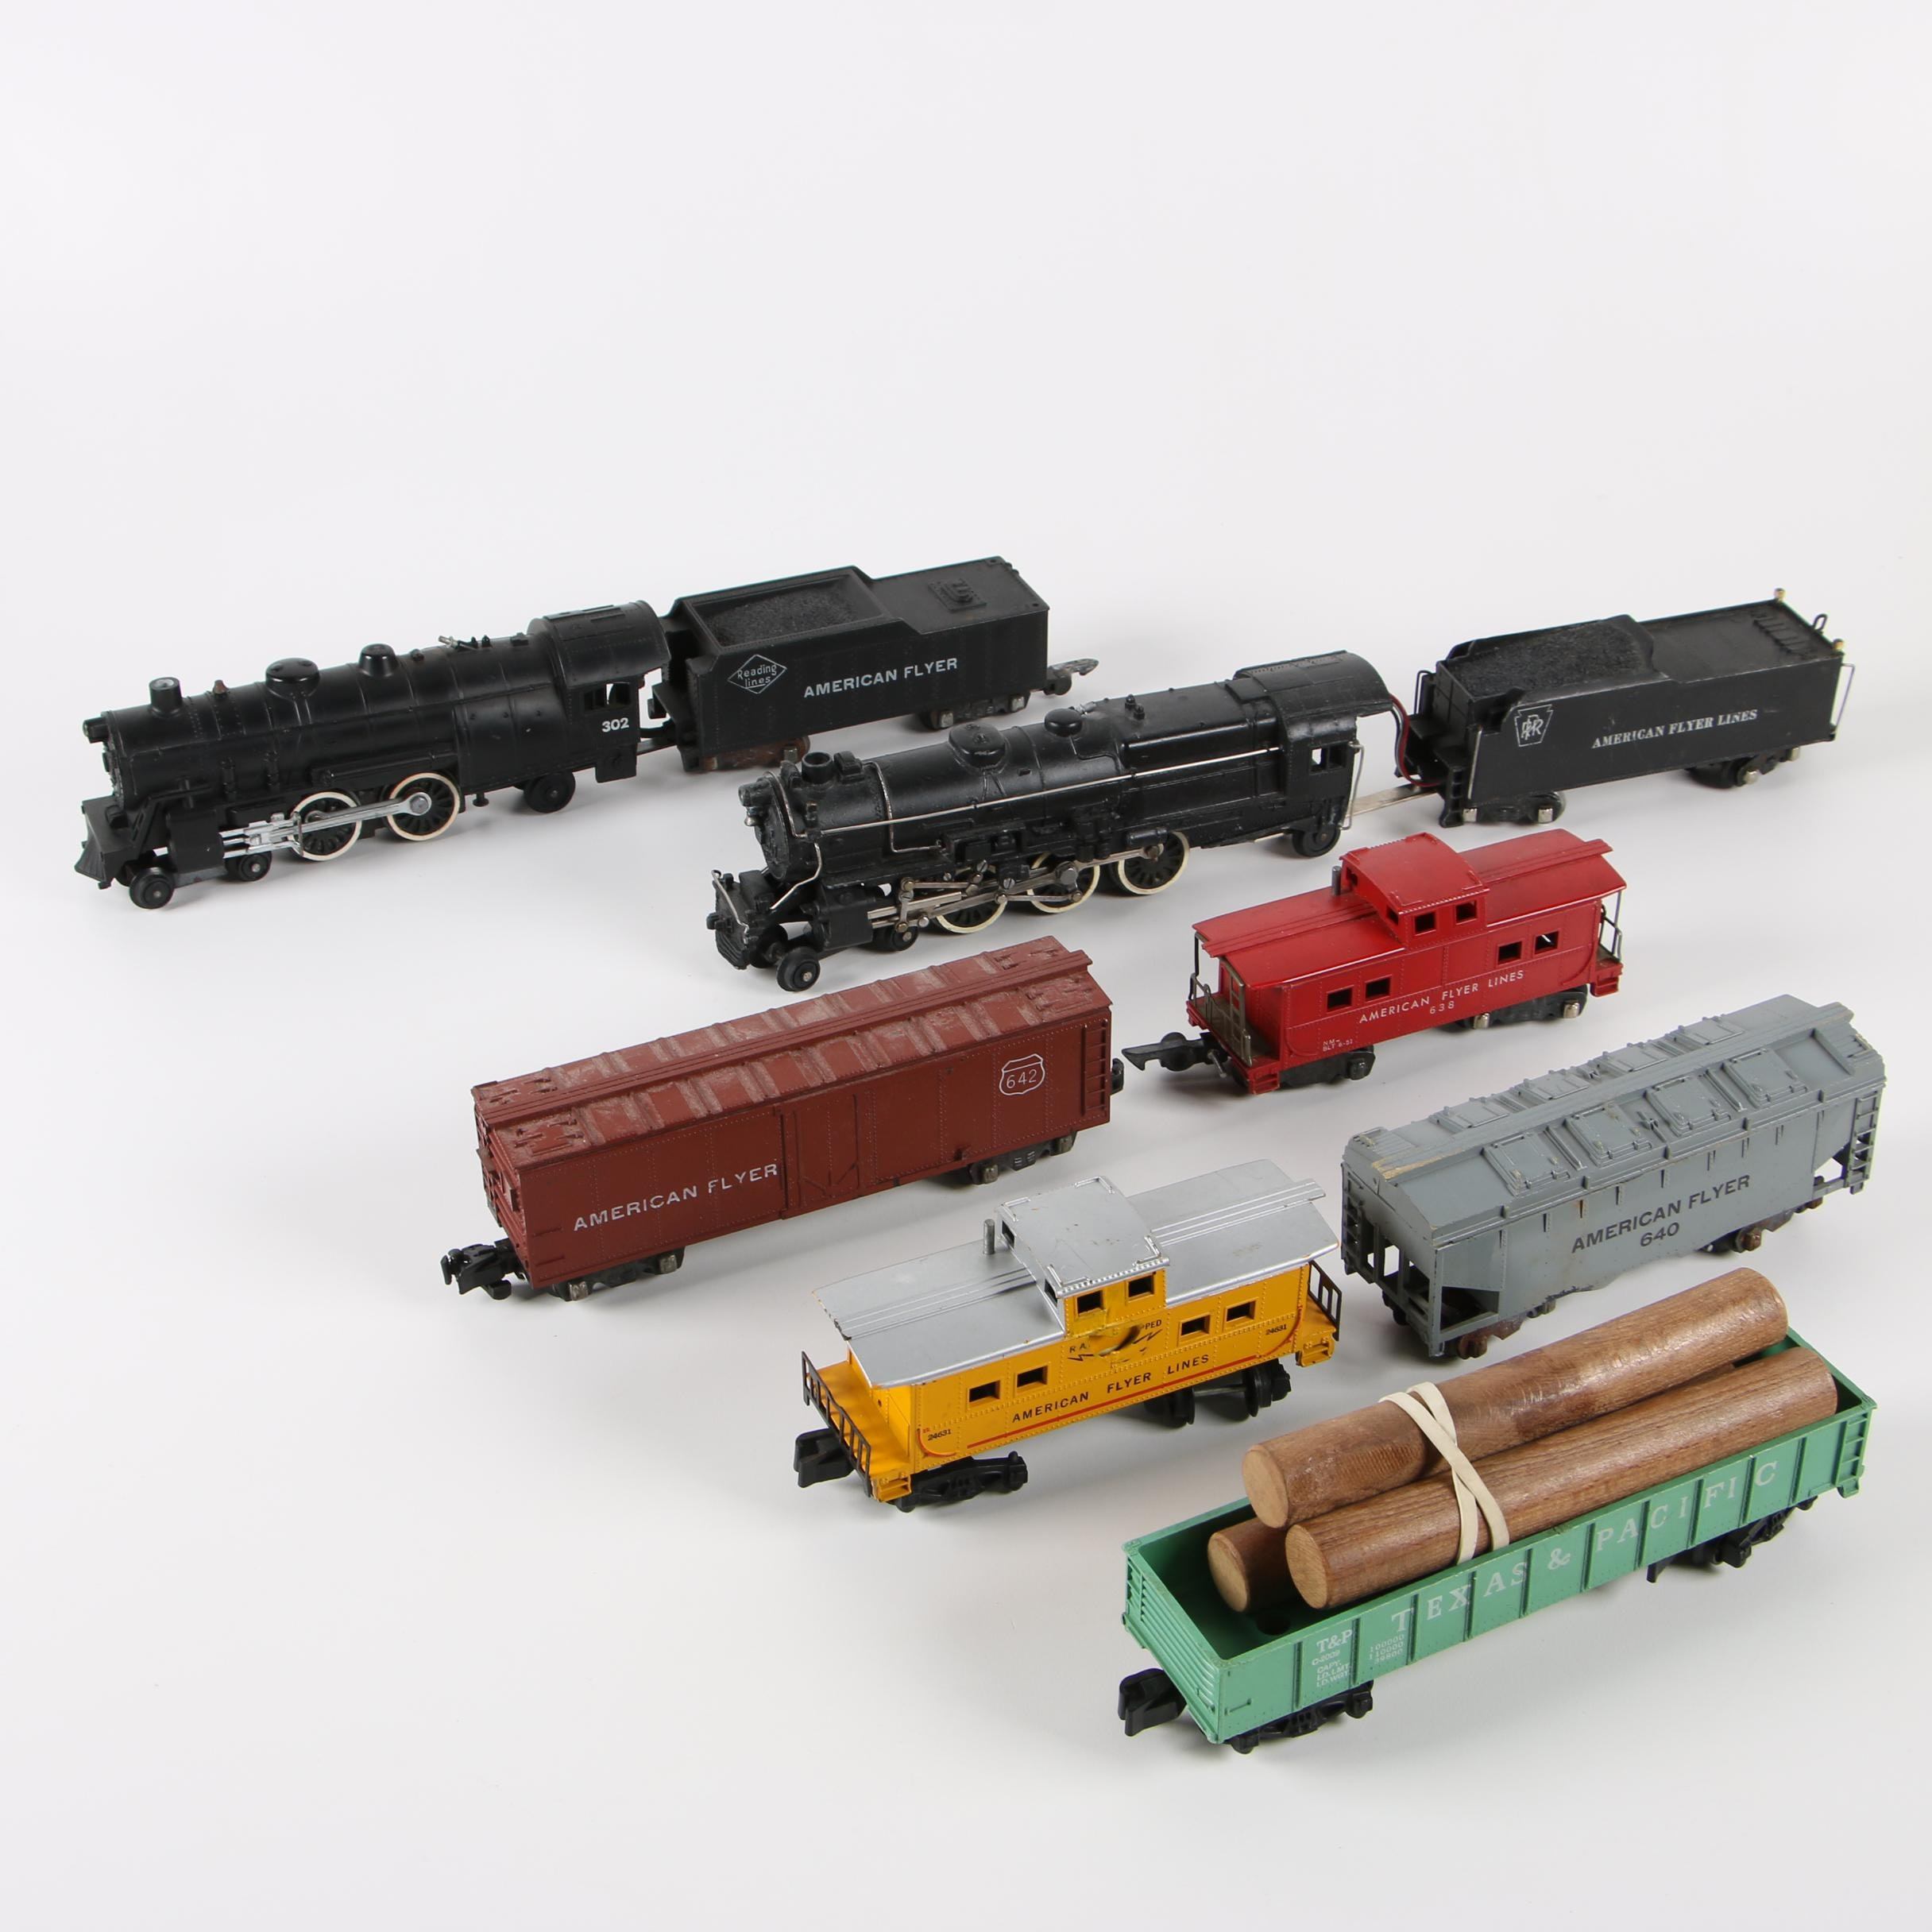 A.C. Gilbert Co. American Flyer S-Scale Trains